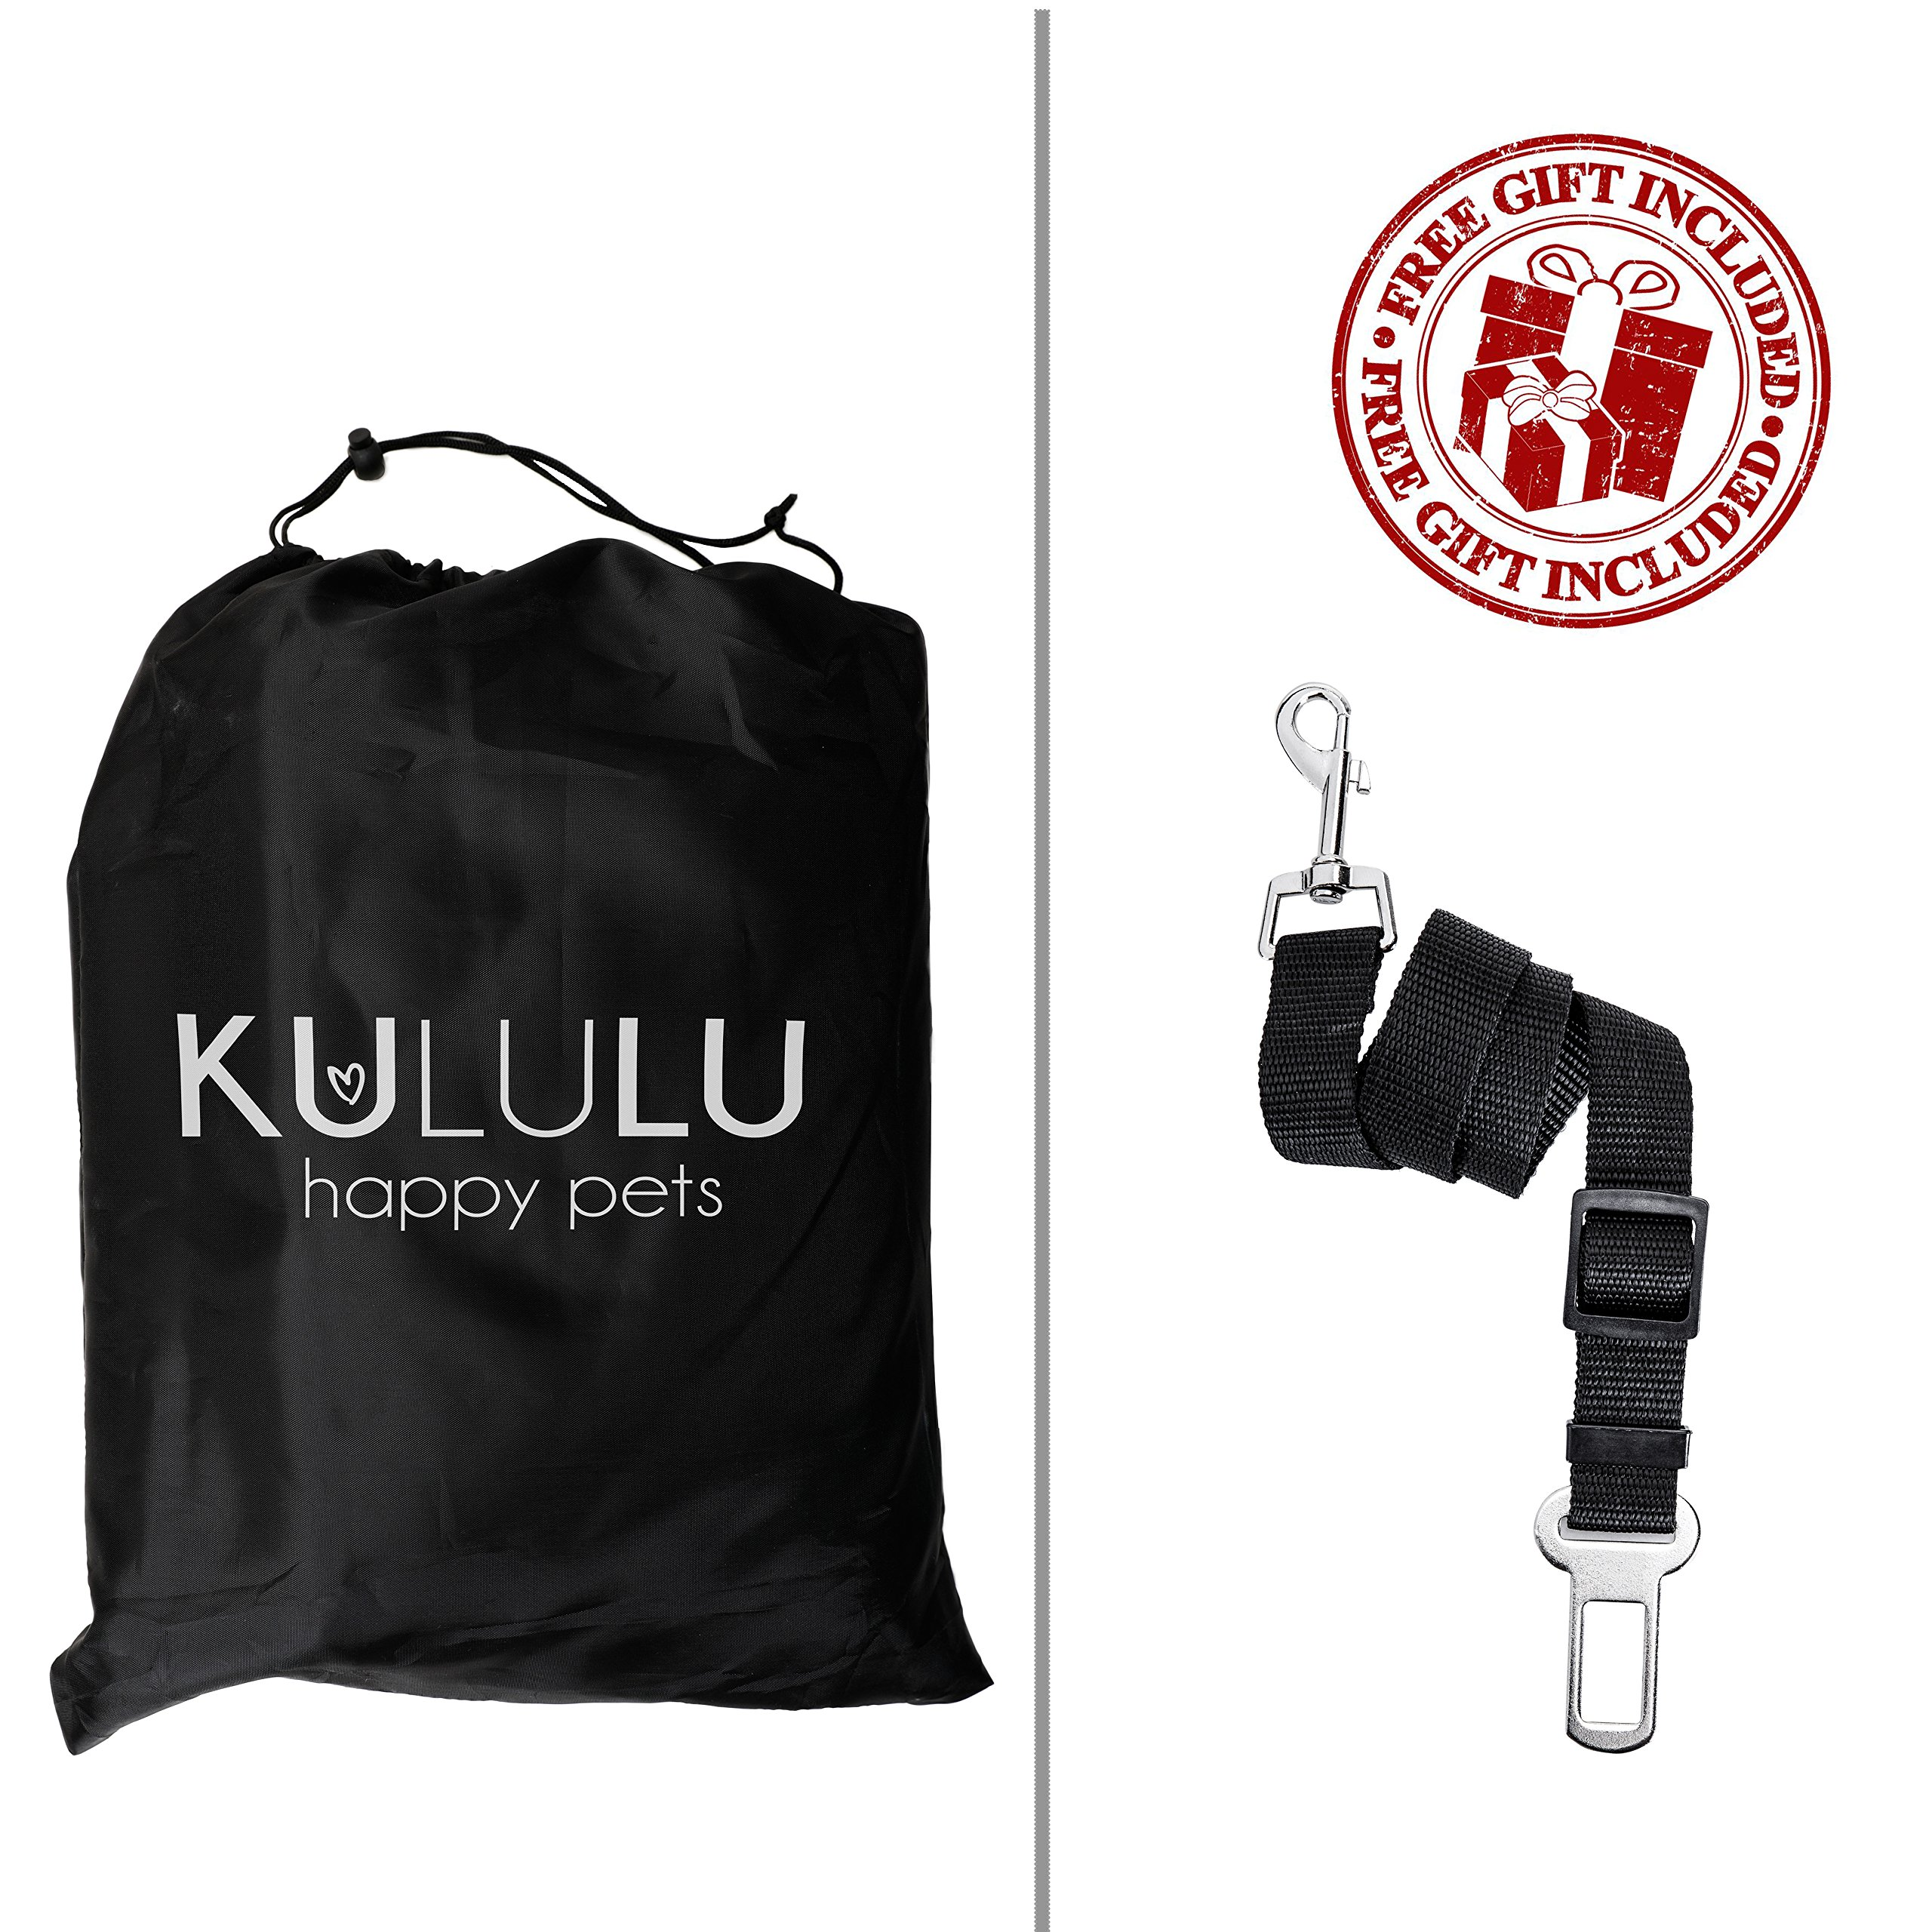 PREMIUM XL Dog Car Seat Cover Hammock Style And Cargo Liner For Cars, Trucks And Suv's. The Original Design You Can See Your Pet & Your Pet Sees You with the ClearView Window- Keeps Your Pet Calm. by Kululu (Image #6)